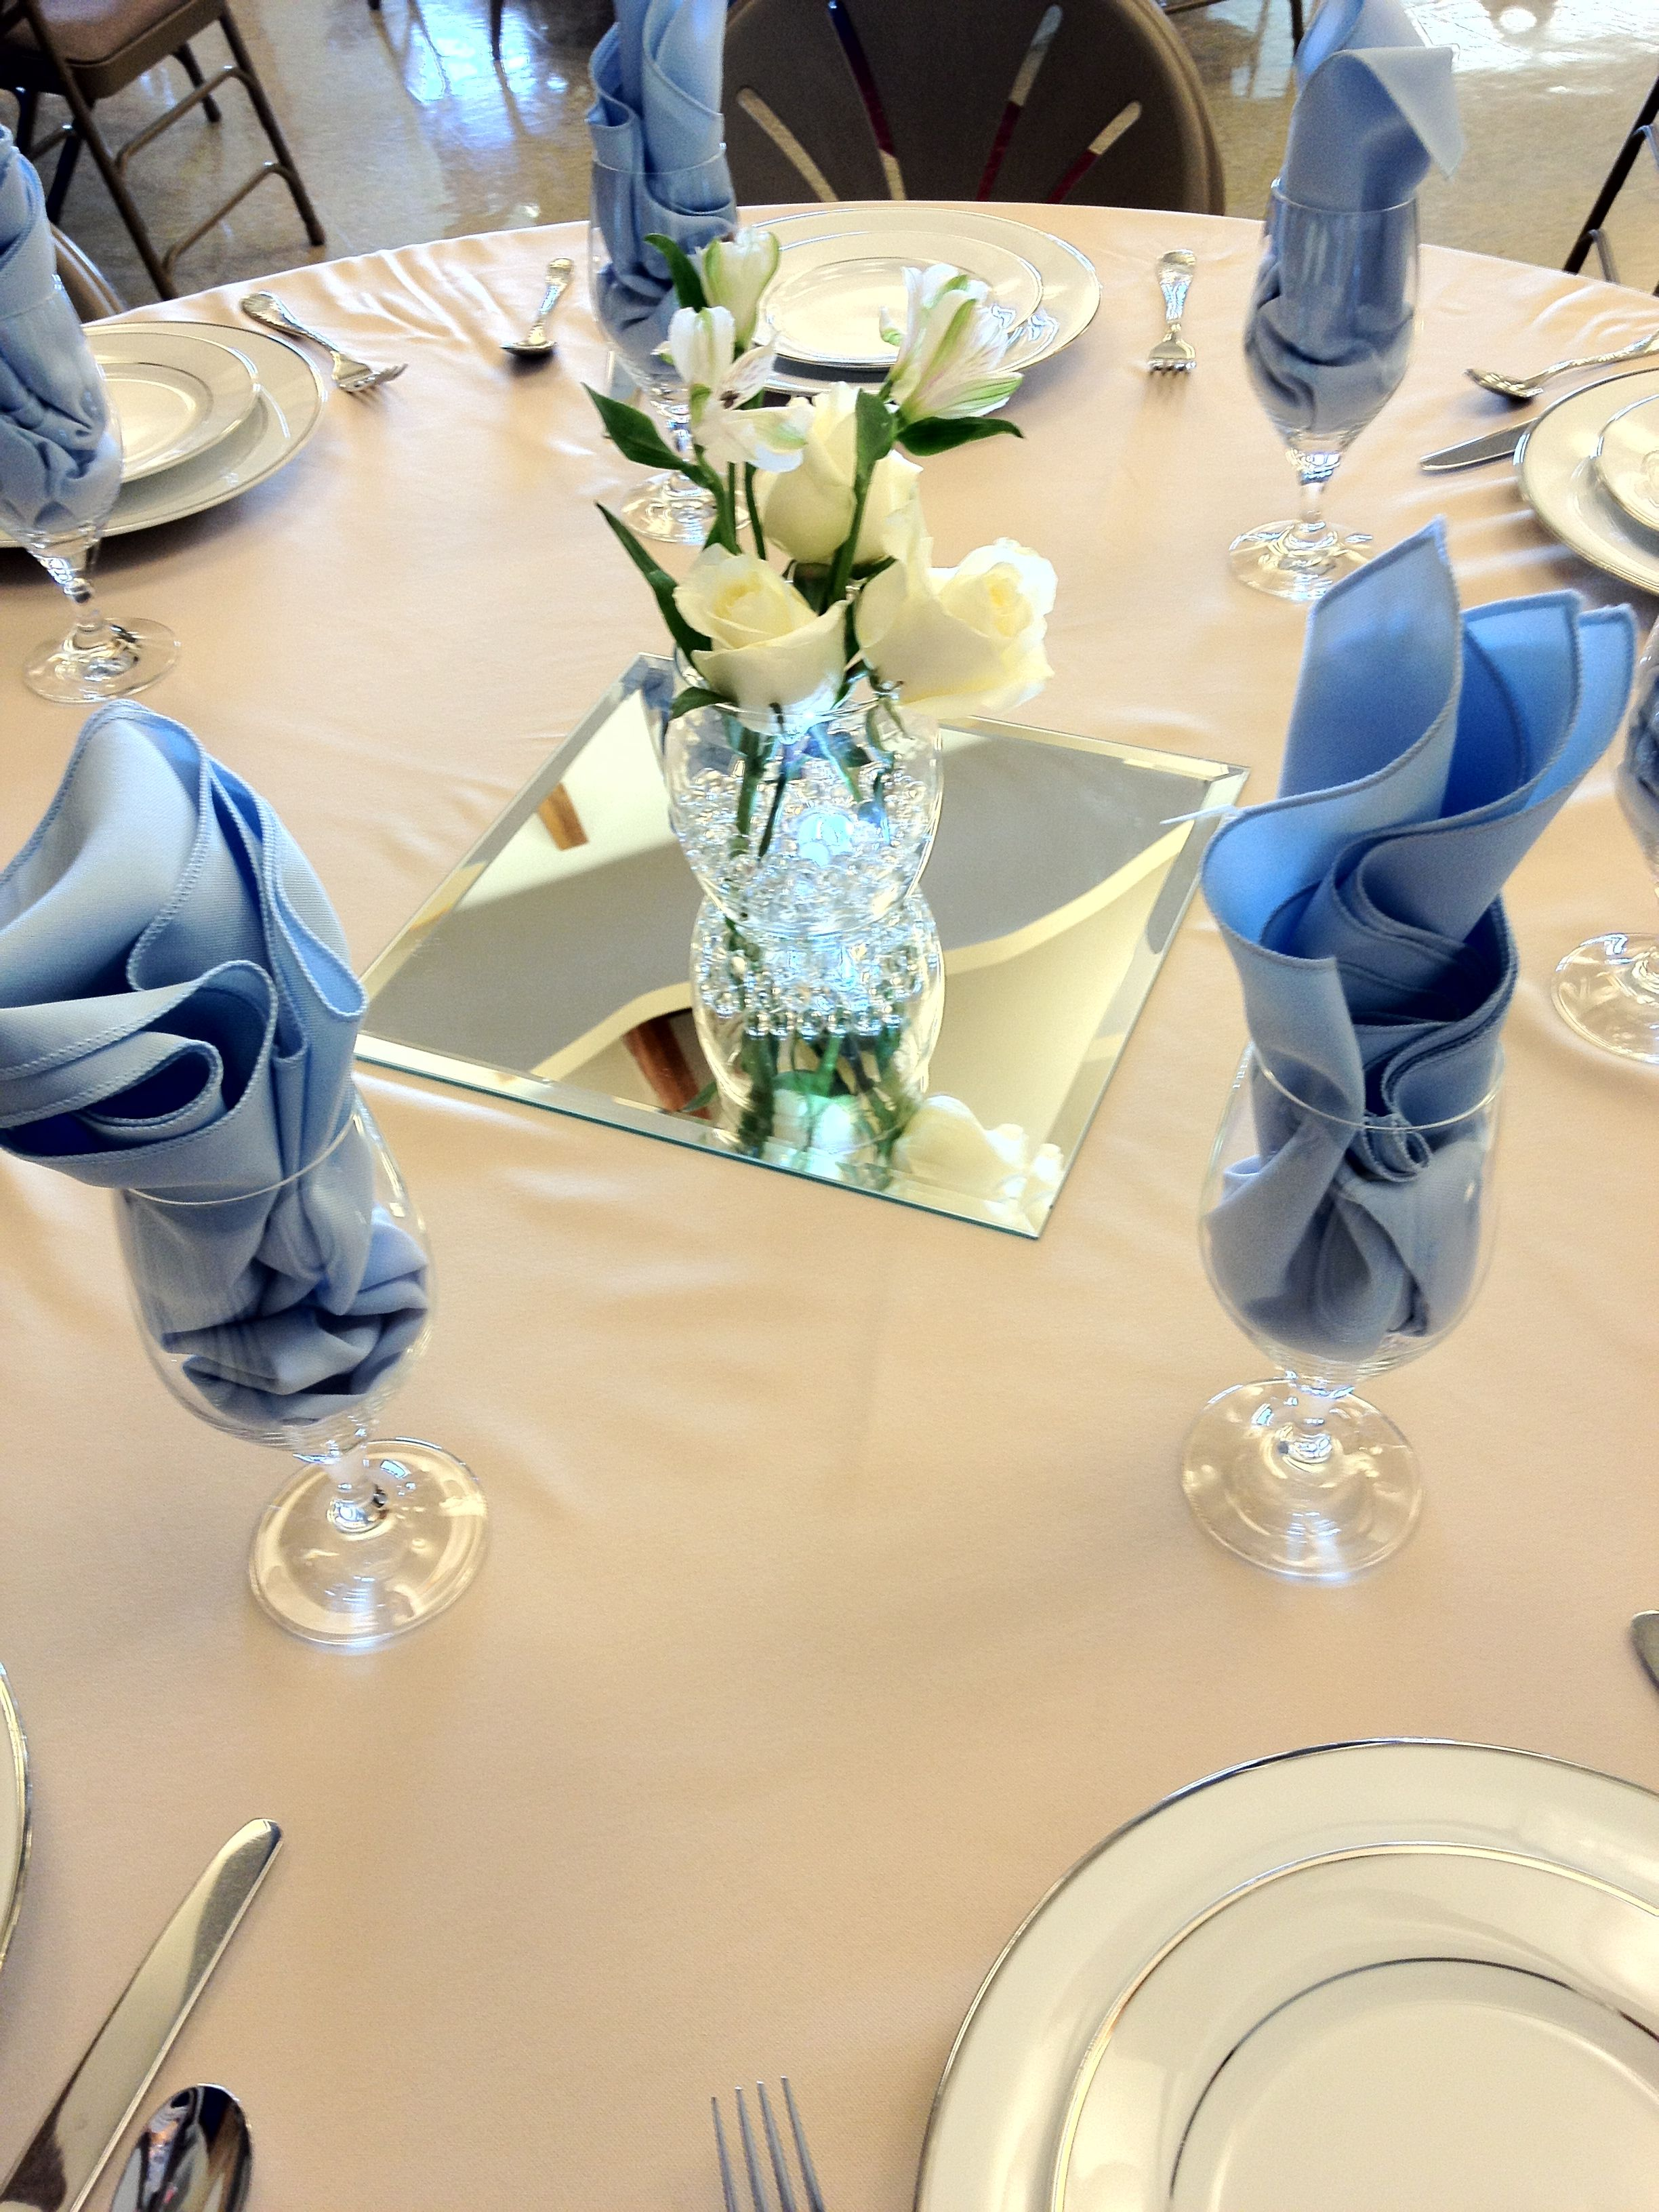 Formal birthday party table decor tables th parties celebration also gold napkins and centerpiece rh ar pinterest